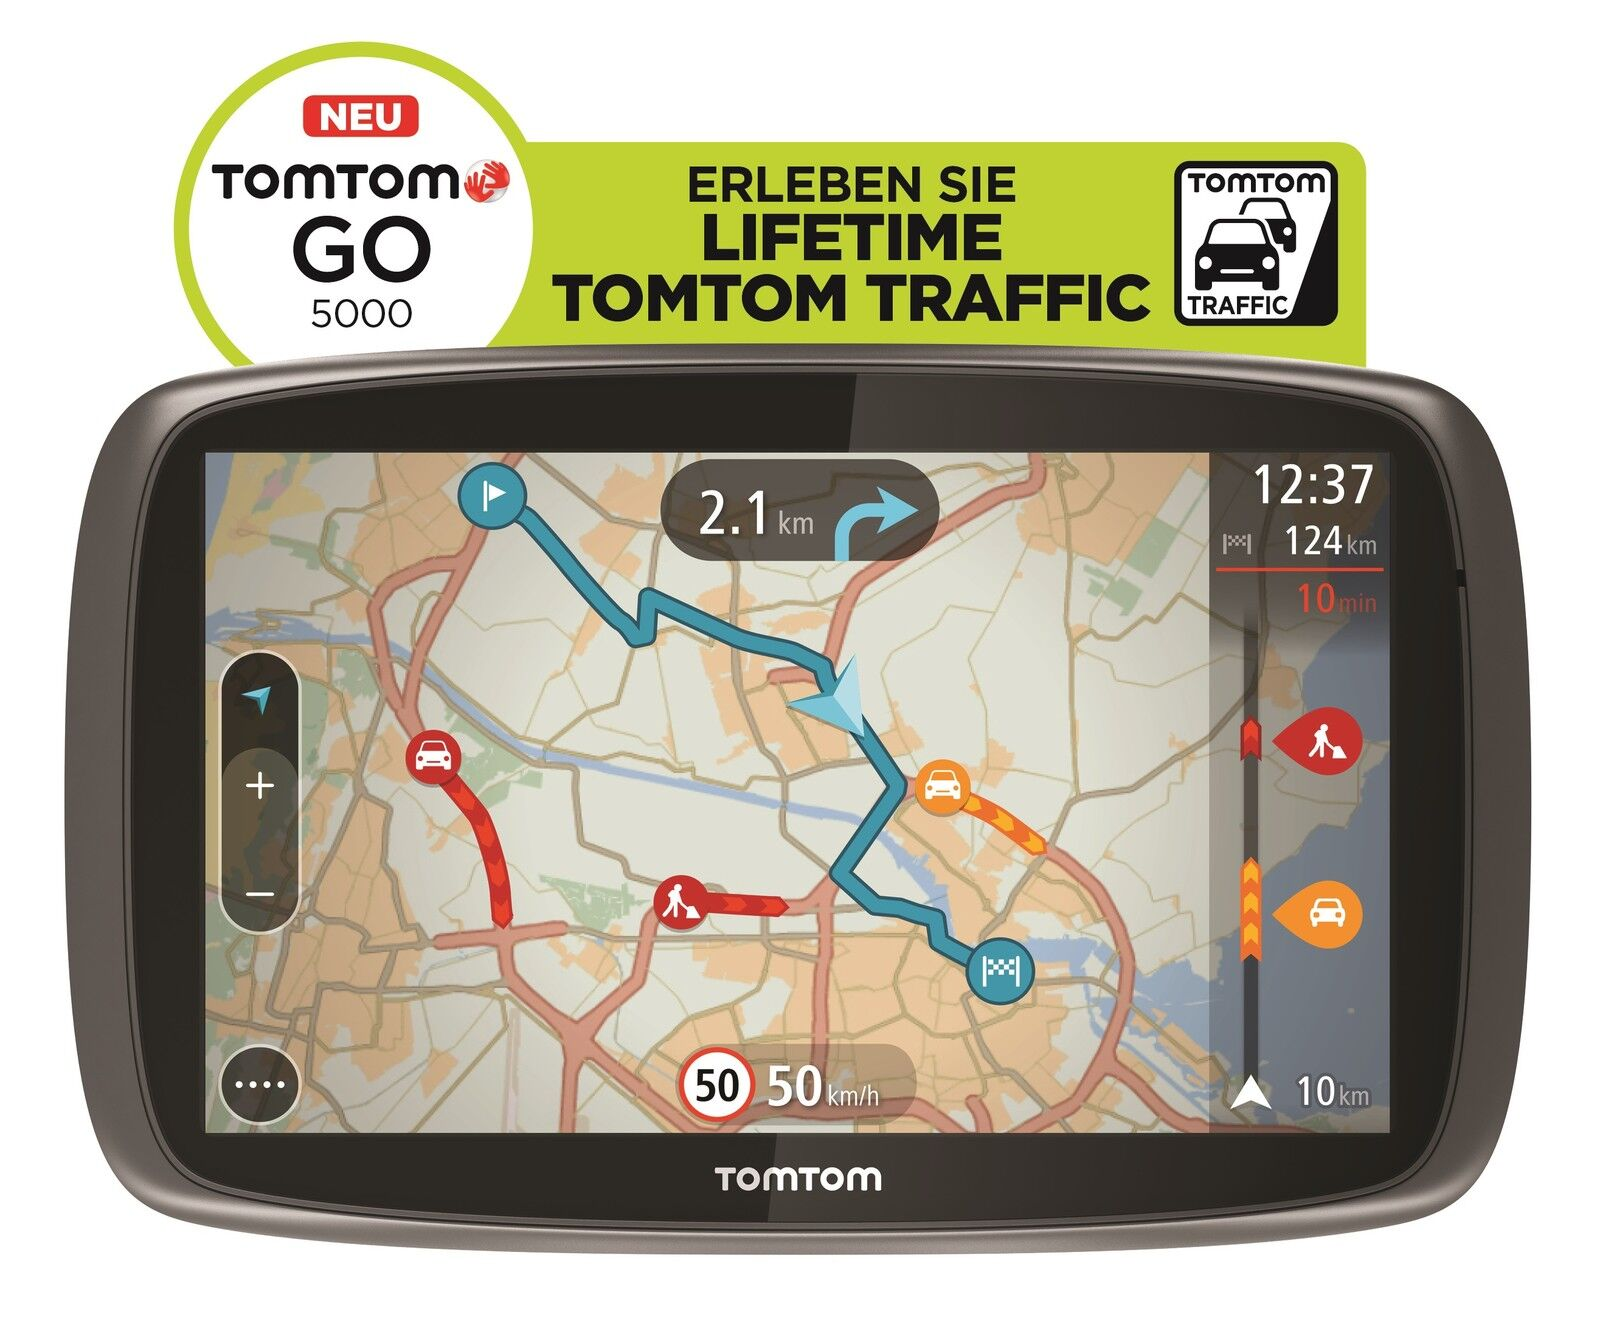 tomtom go 5000 m europa xxl hd traffic free lifetime 3d maps iq tap go gps wow. Black Bedroom Furniture Sets. Home Design Ideas